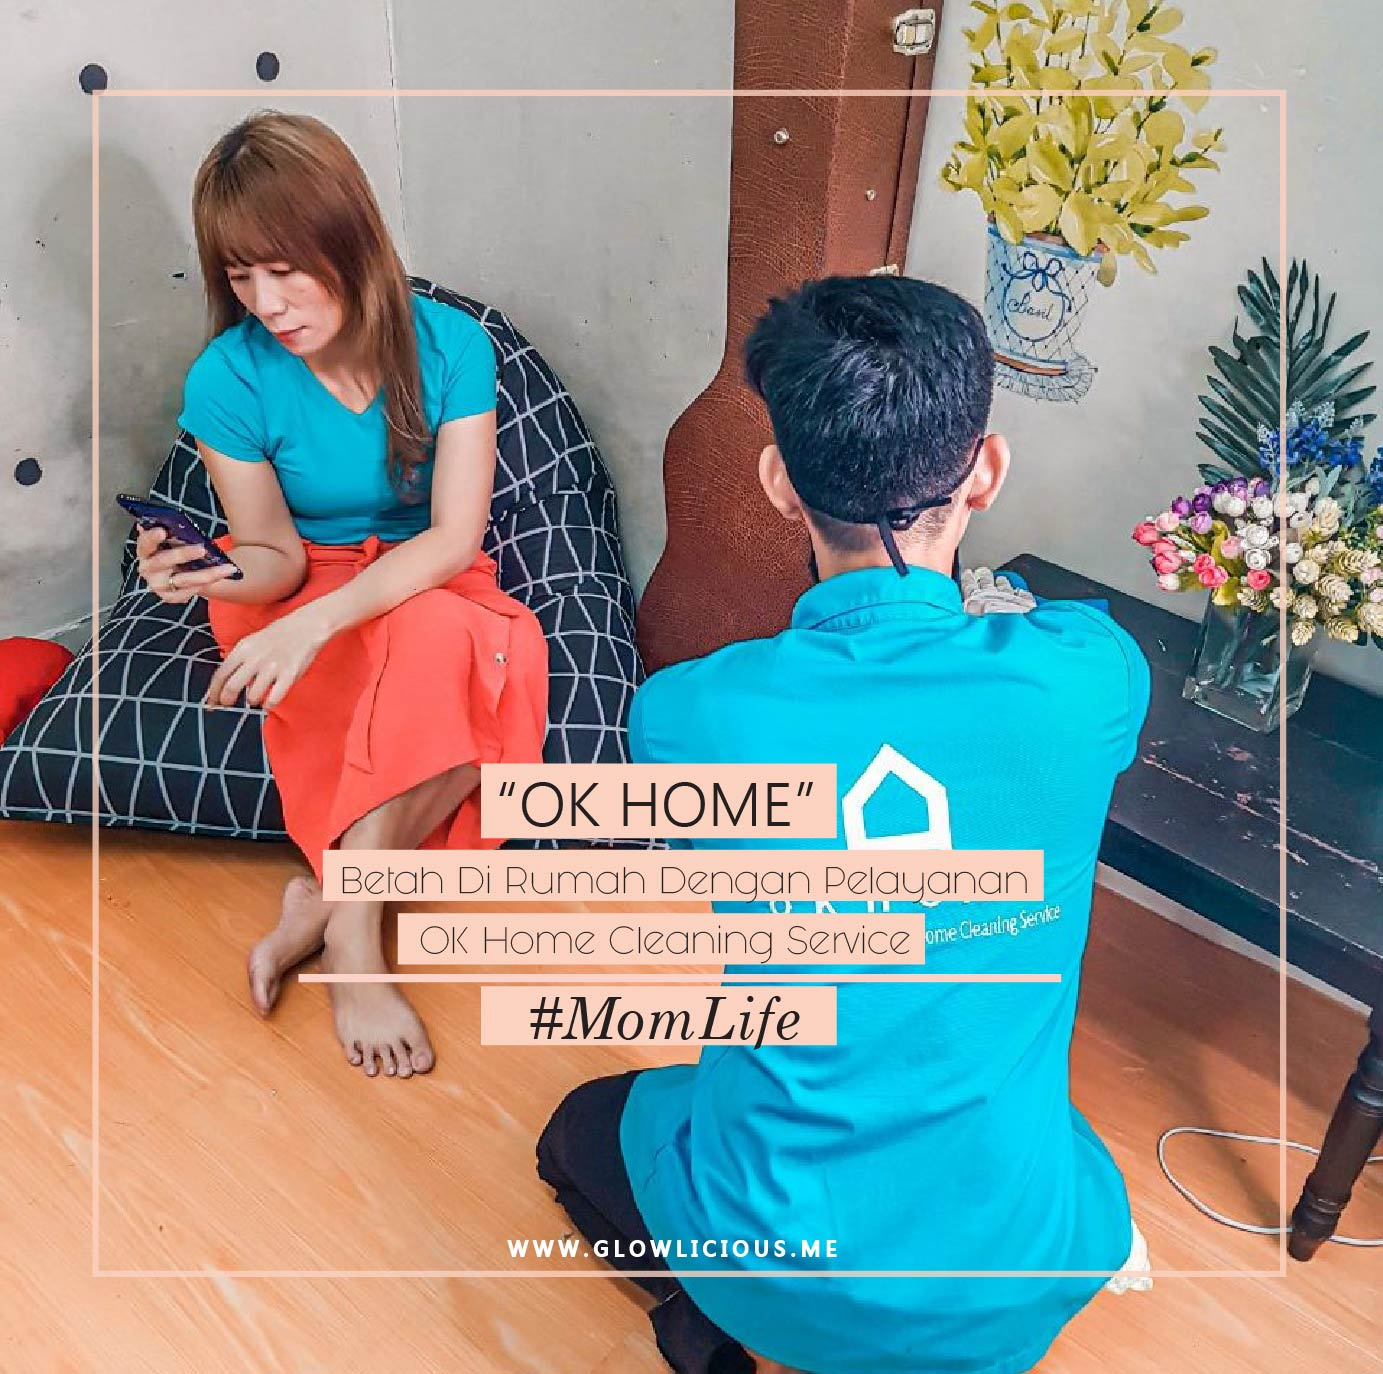 Review Pelayanan OK Home Cleaning Service 50-30-30